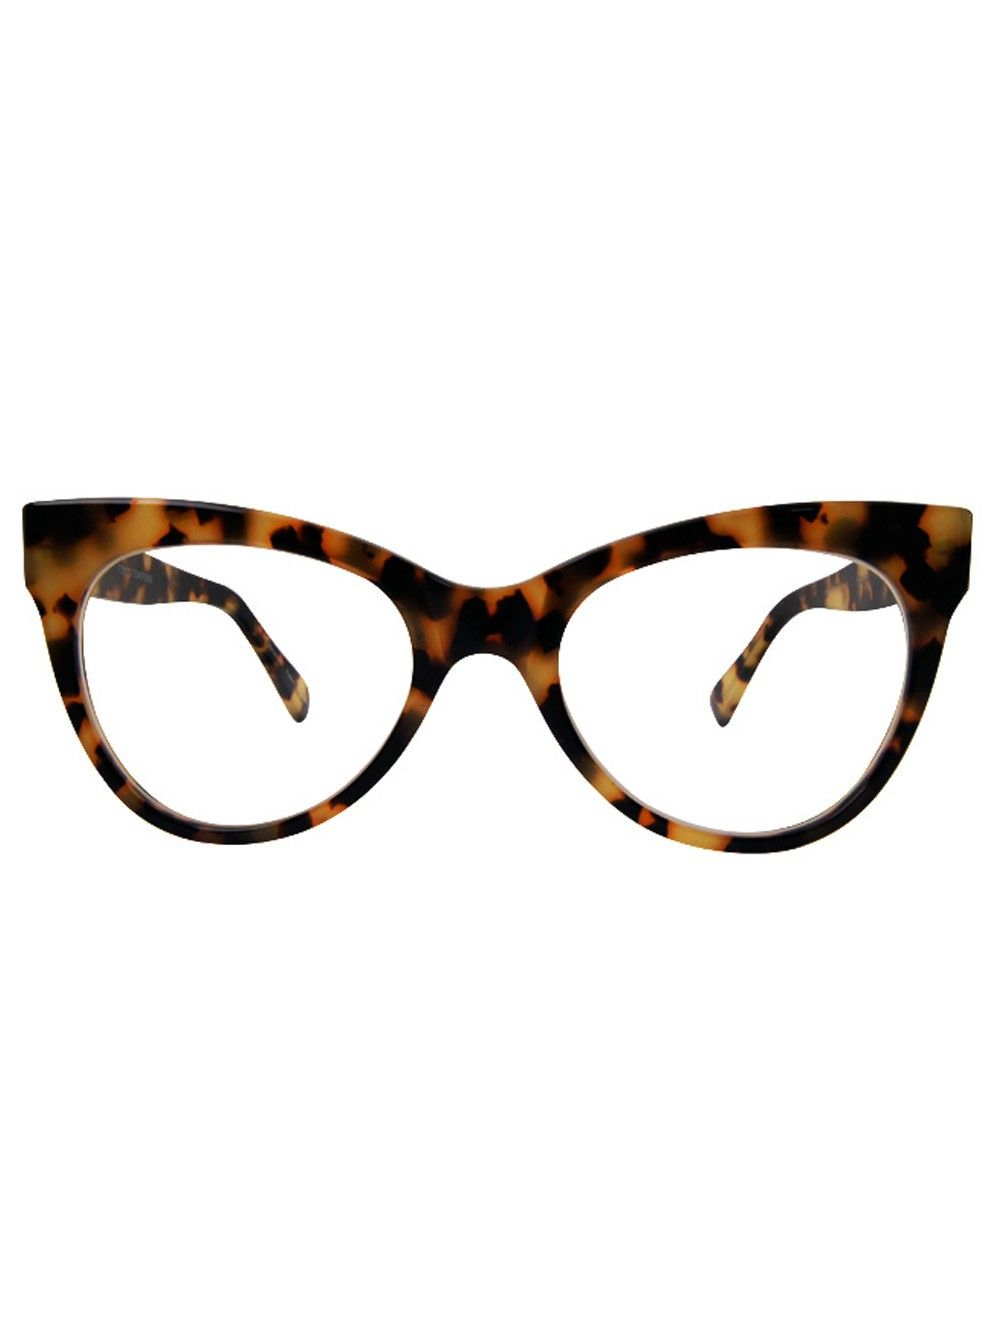 dbc629423a6 Square Cat Eye Glasses in Tokyo Tort by Norma Kamali would flatter any  face. ... Love the hornrimmed design.